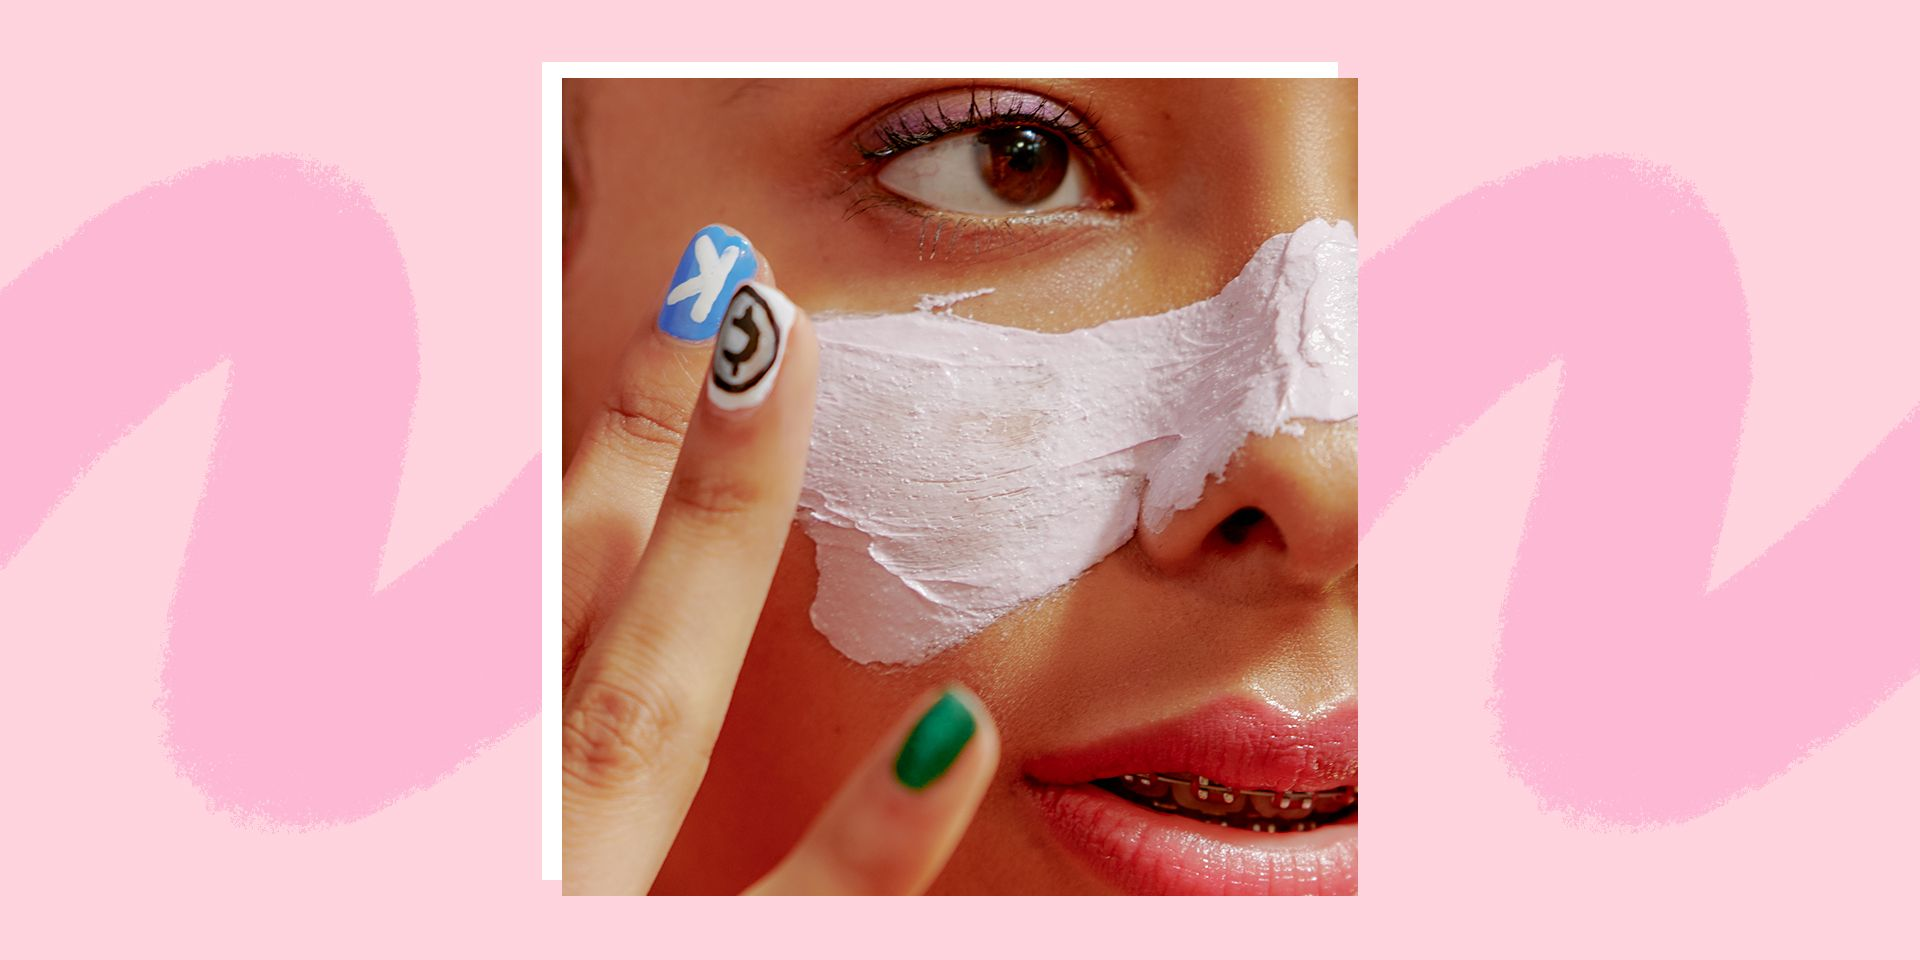 How to make a pimple disappear